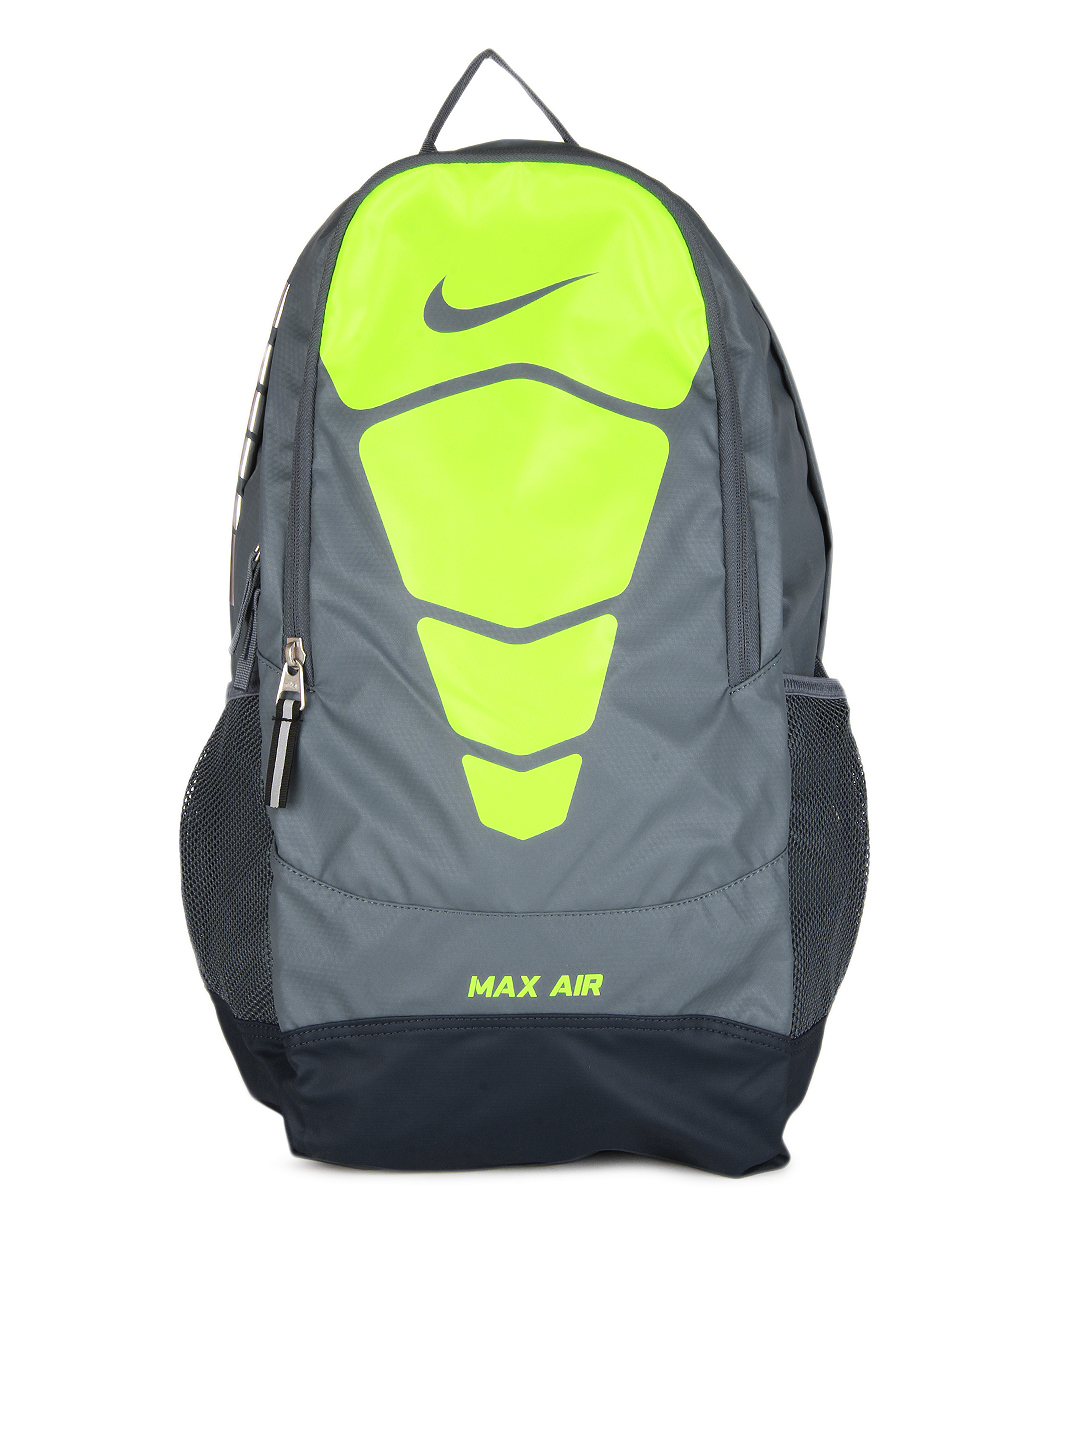 max air backpack